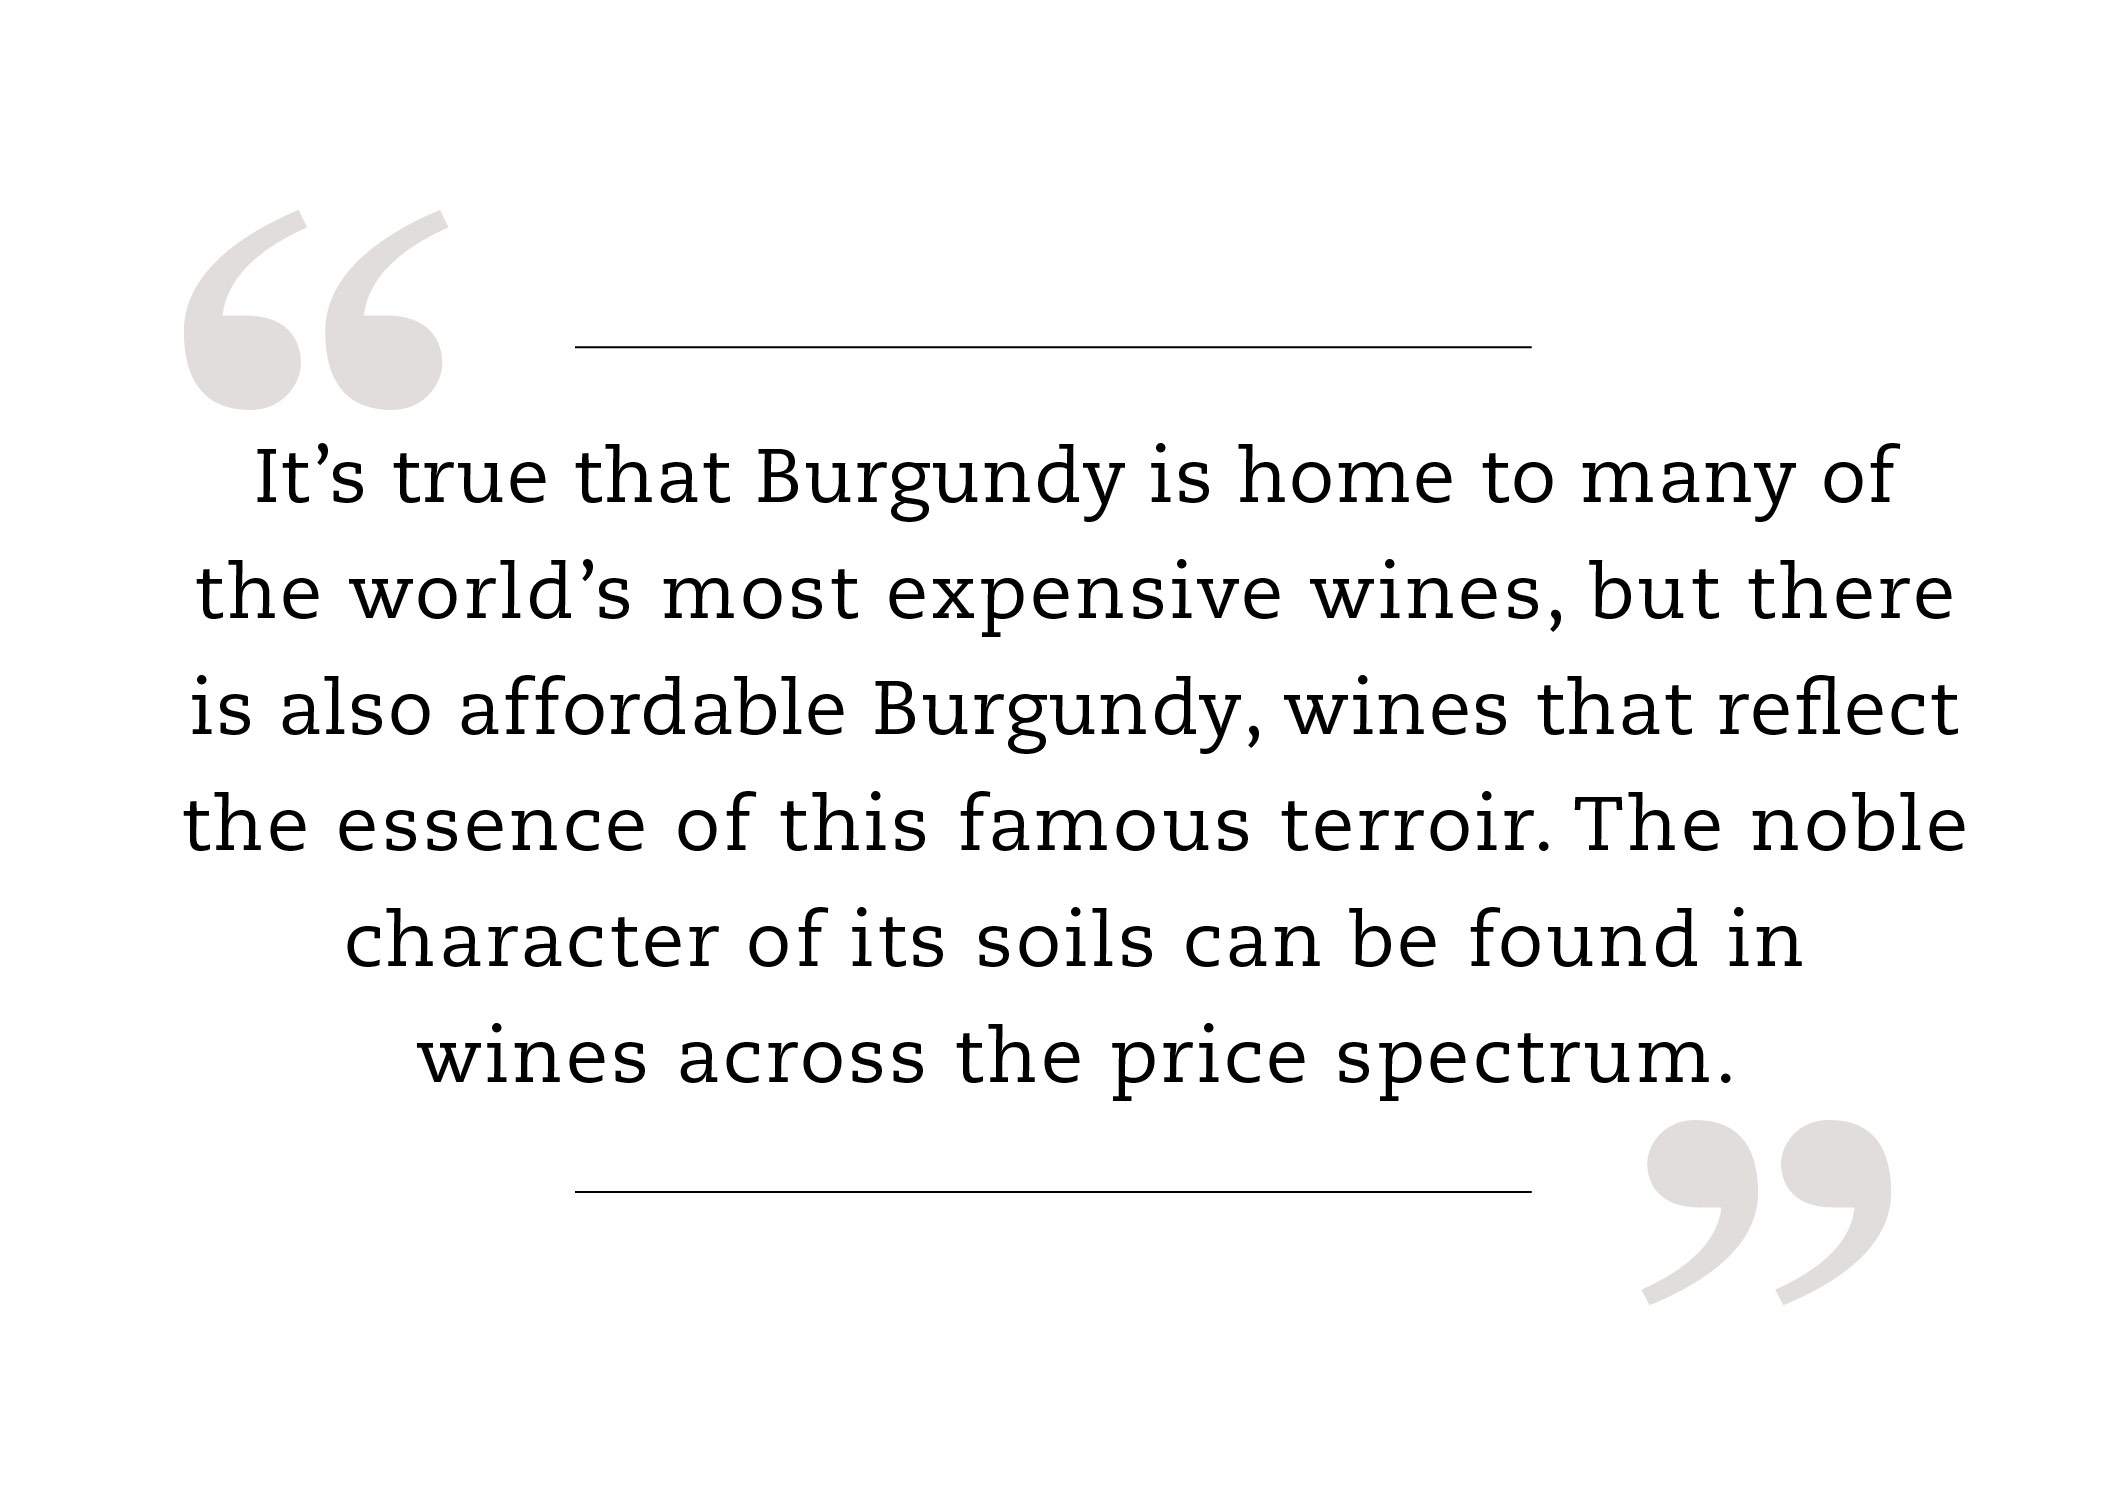 It's true that Burgundy is home to many of the world's most expensive wines, but there is also affordable Burgundy, wines that reflect the essence of this famous terroir. The noble character of its soils can be found in wines across the price spectrum.